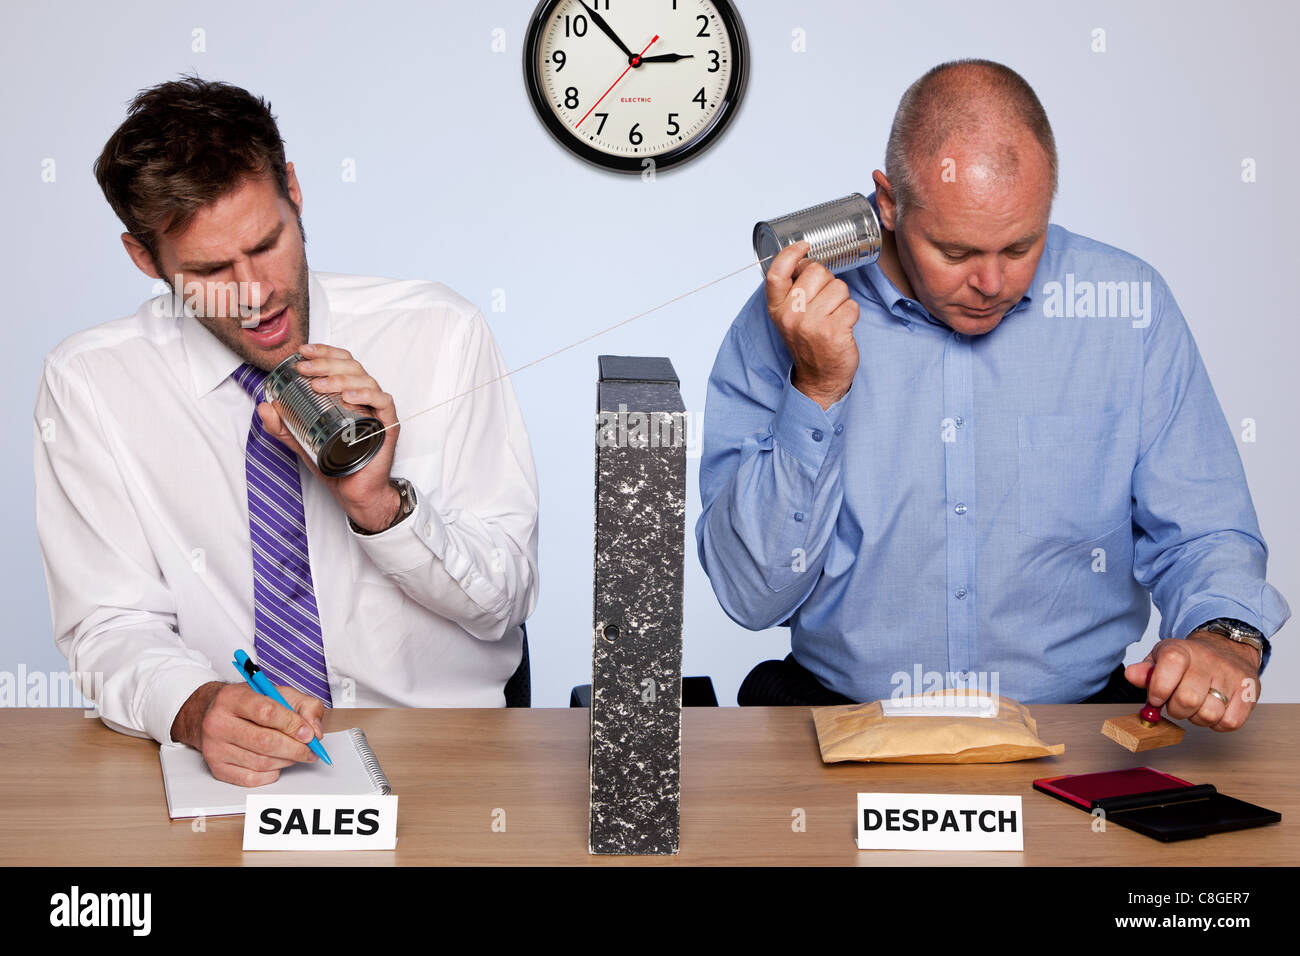 Amusing photo showing the behind the scenes reality of the sales and despatch departments for a small business - Stock Image